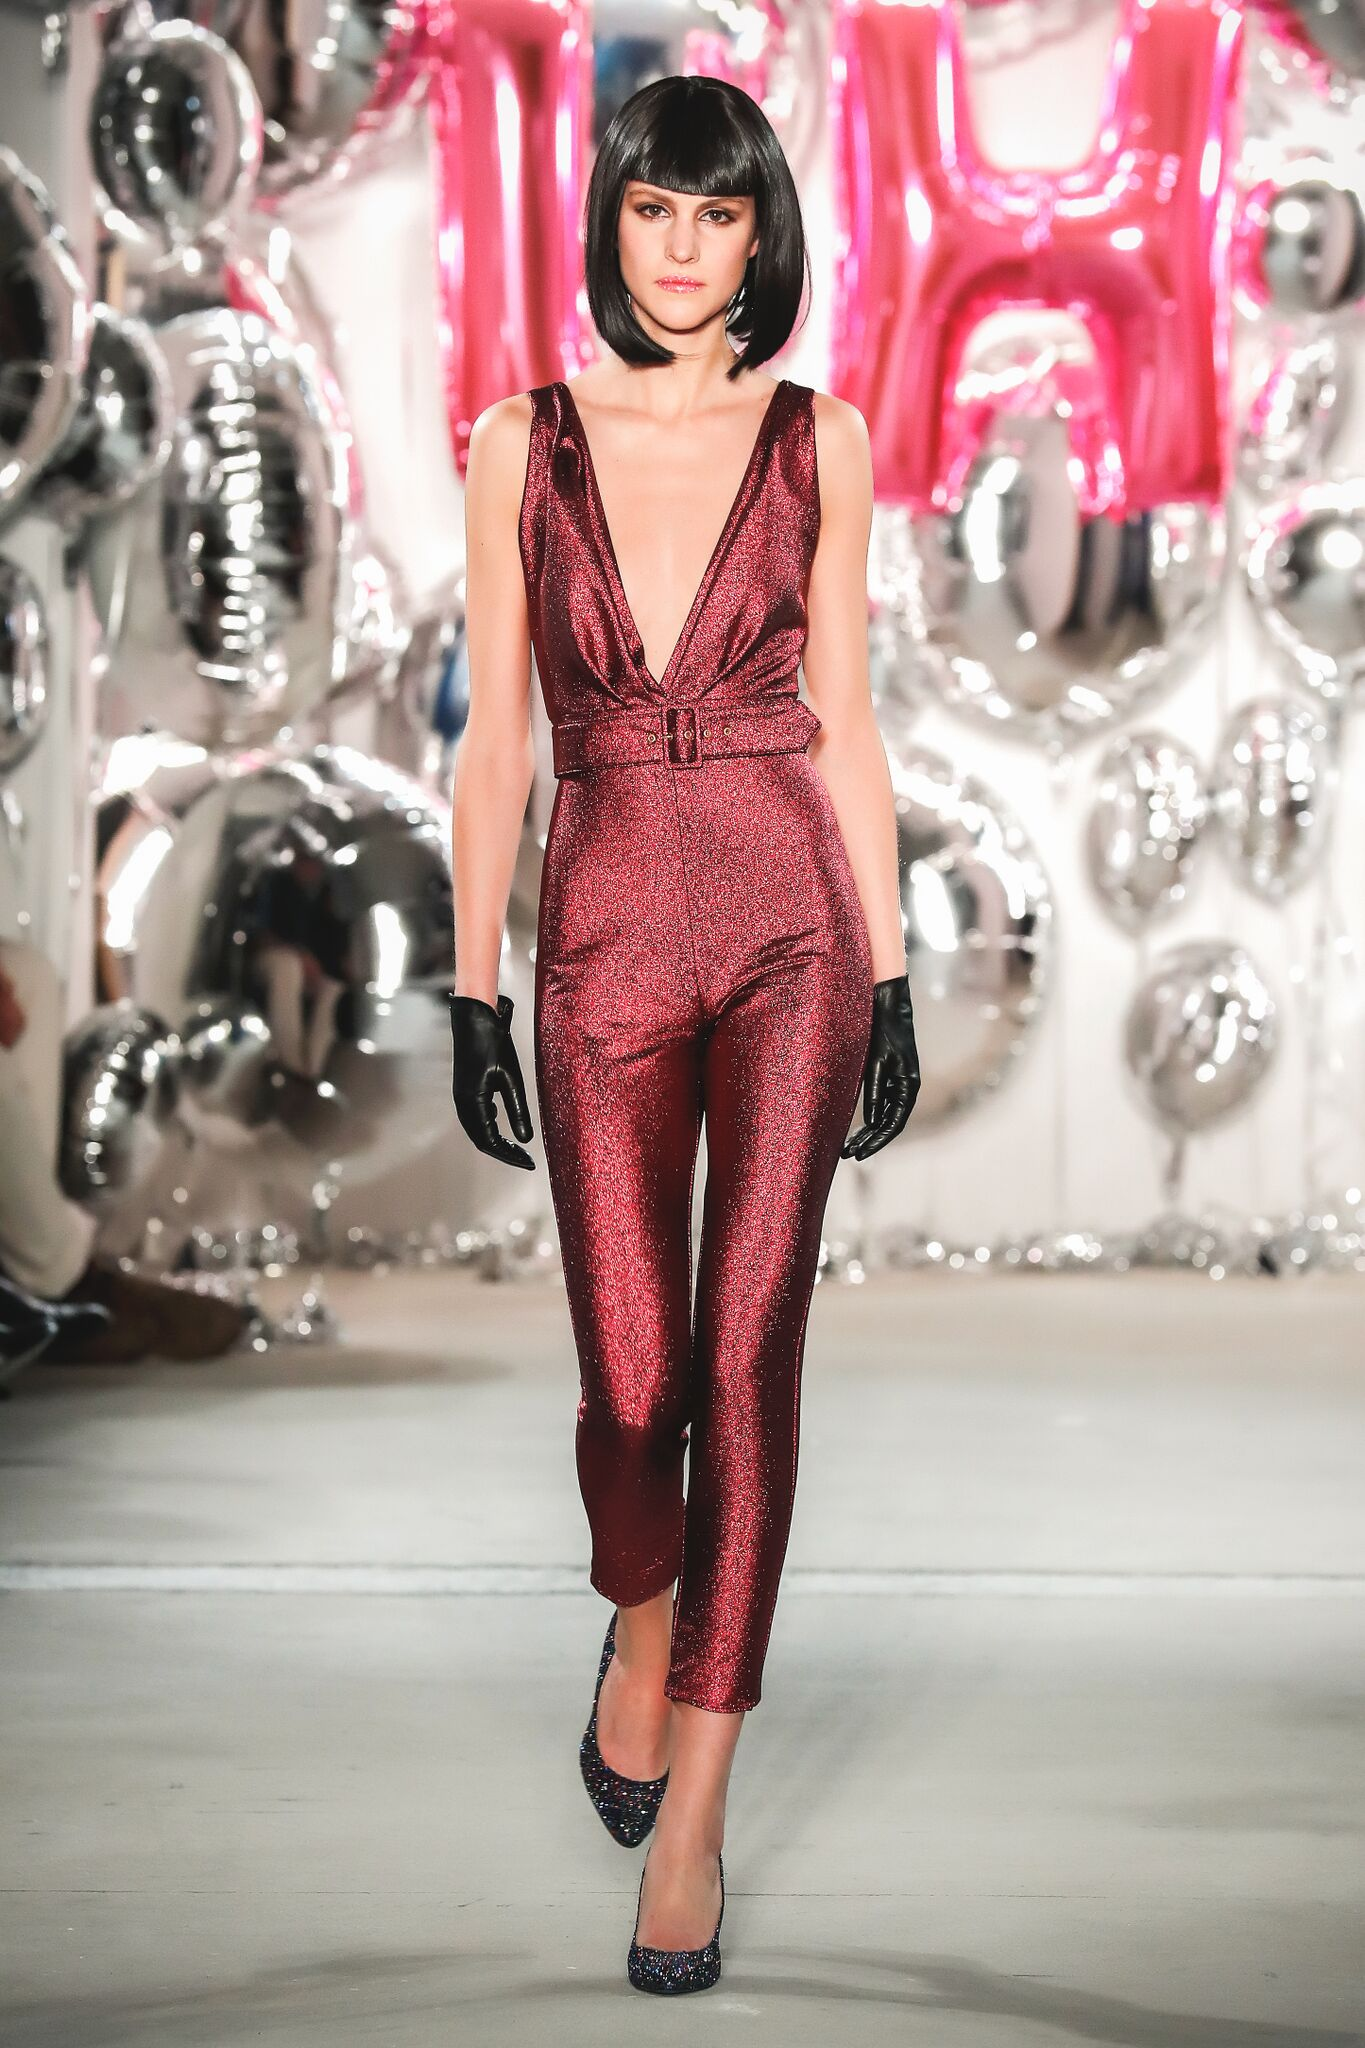 MBFW Berlin Autumn/Winter 2017/2018 Lena Hoschek